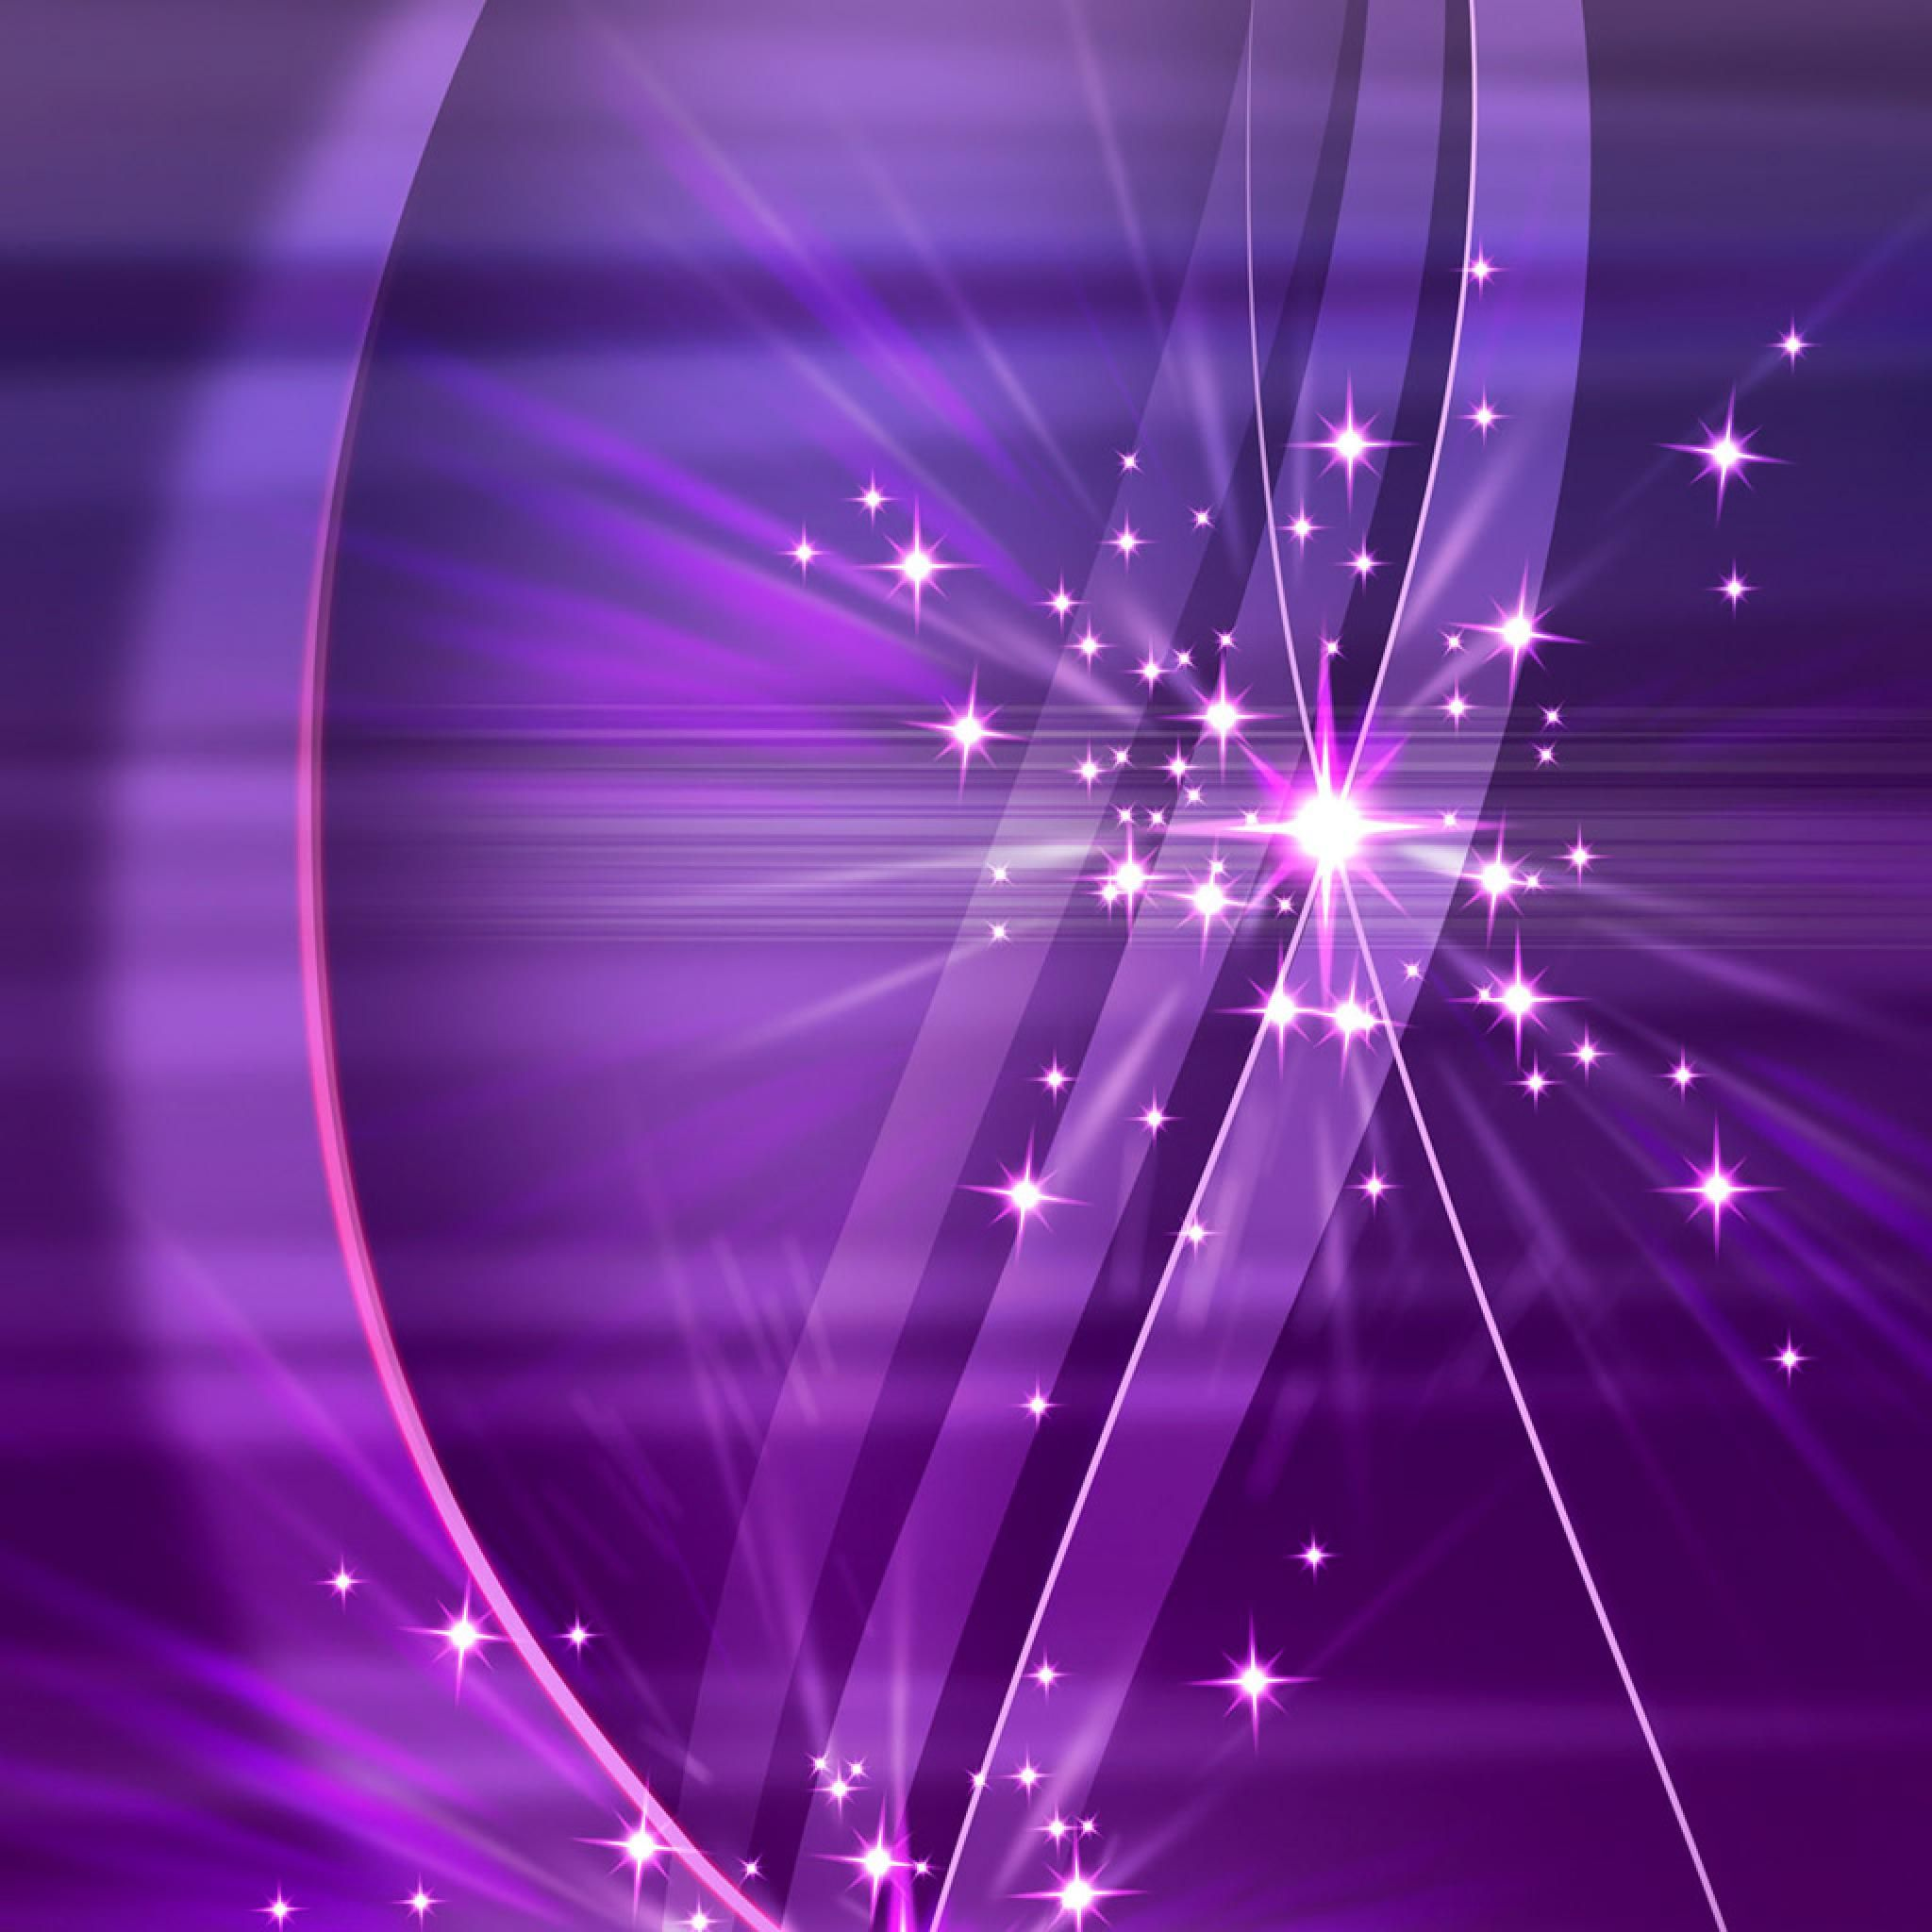 Abstract HD Simply Violet Sparks 3D Wallpapers Wallpaper